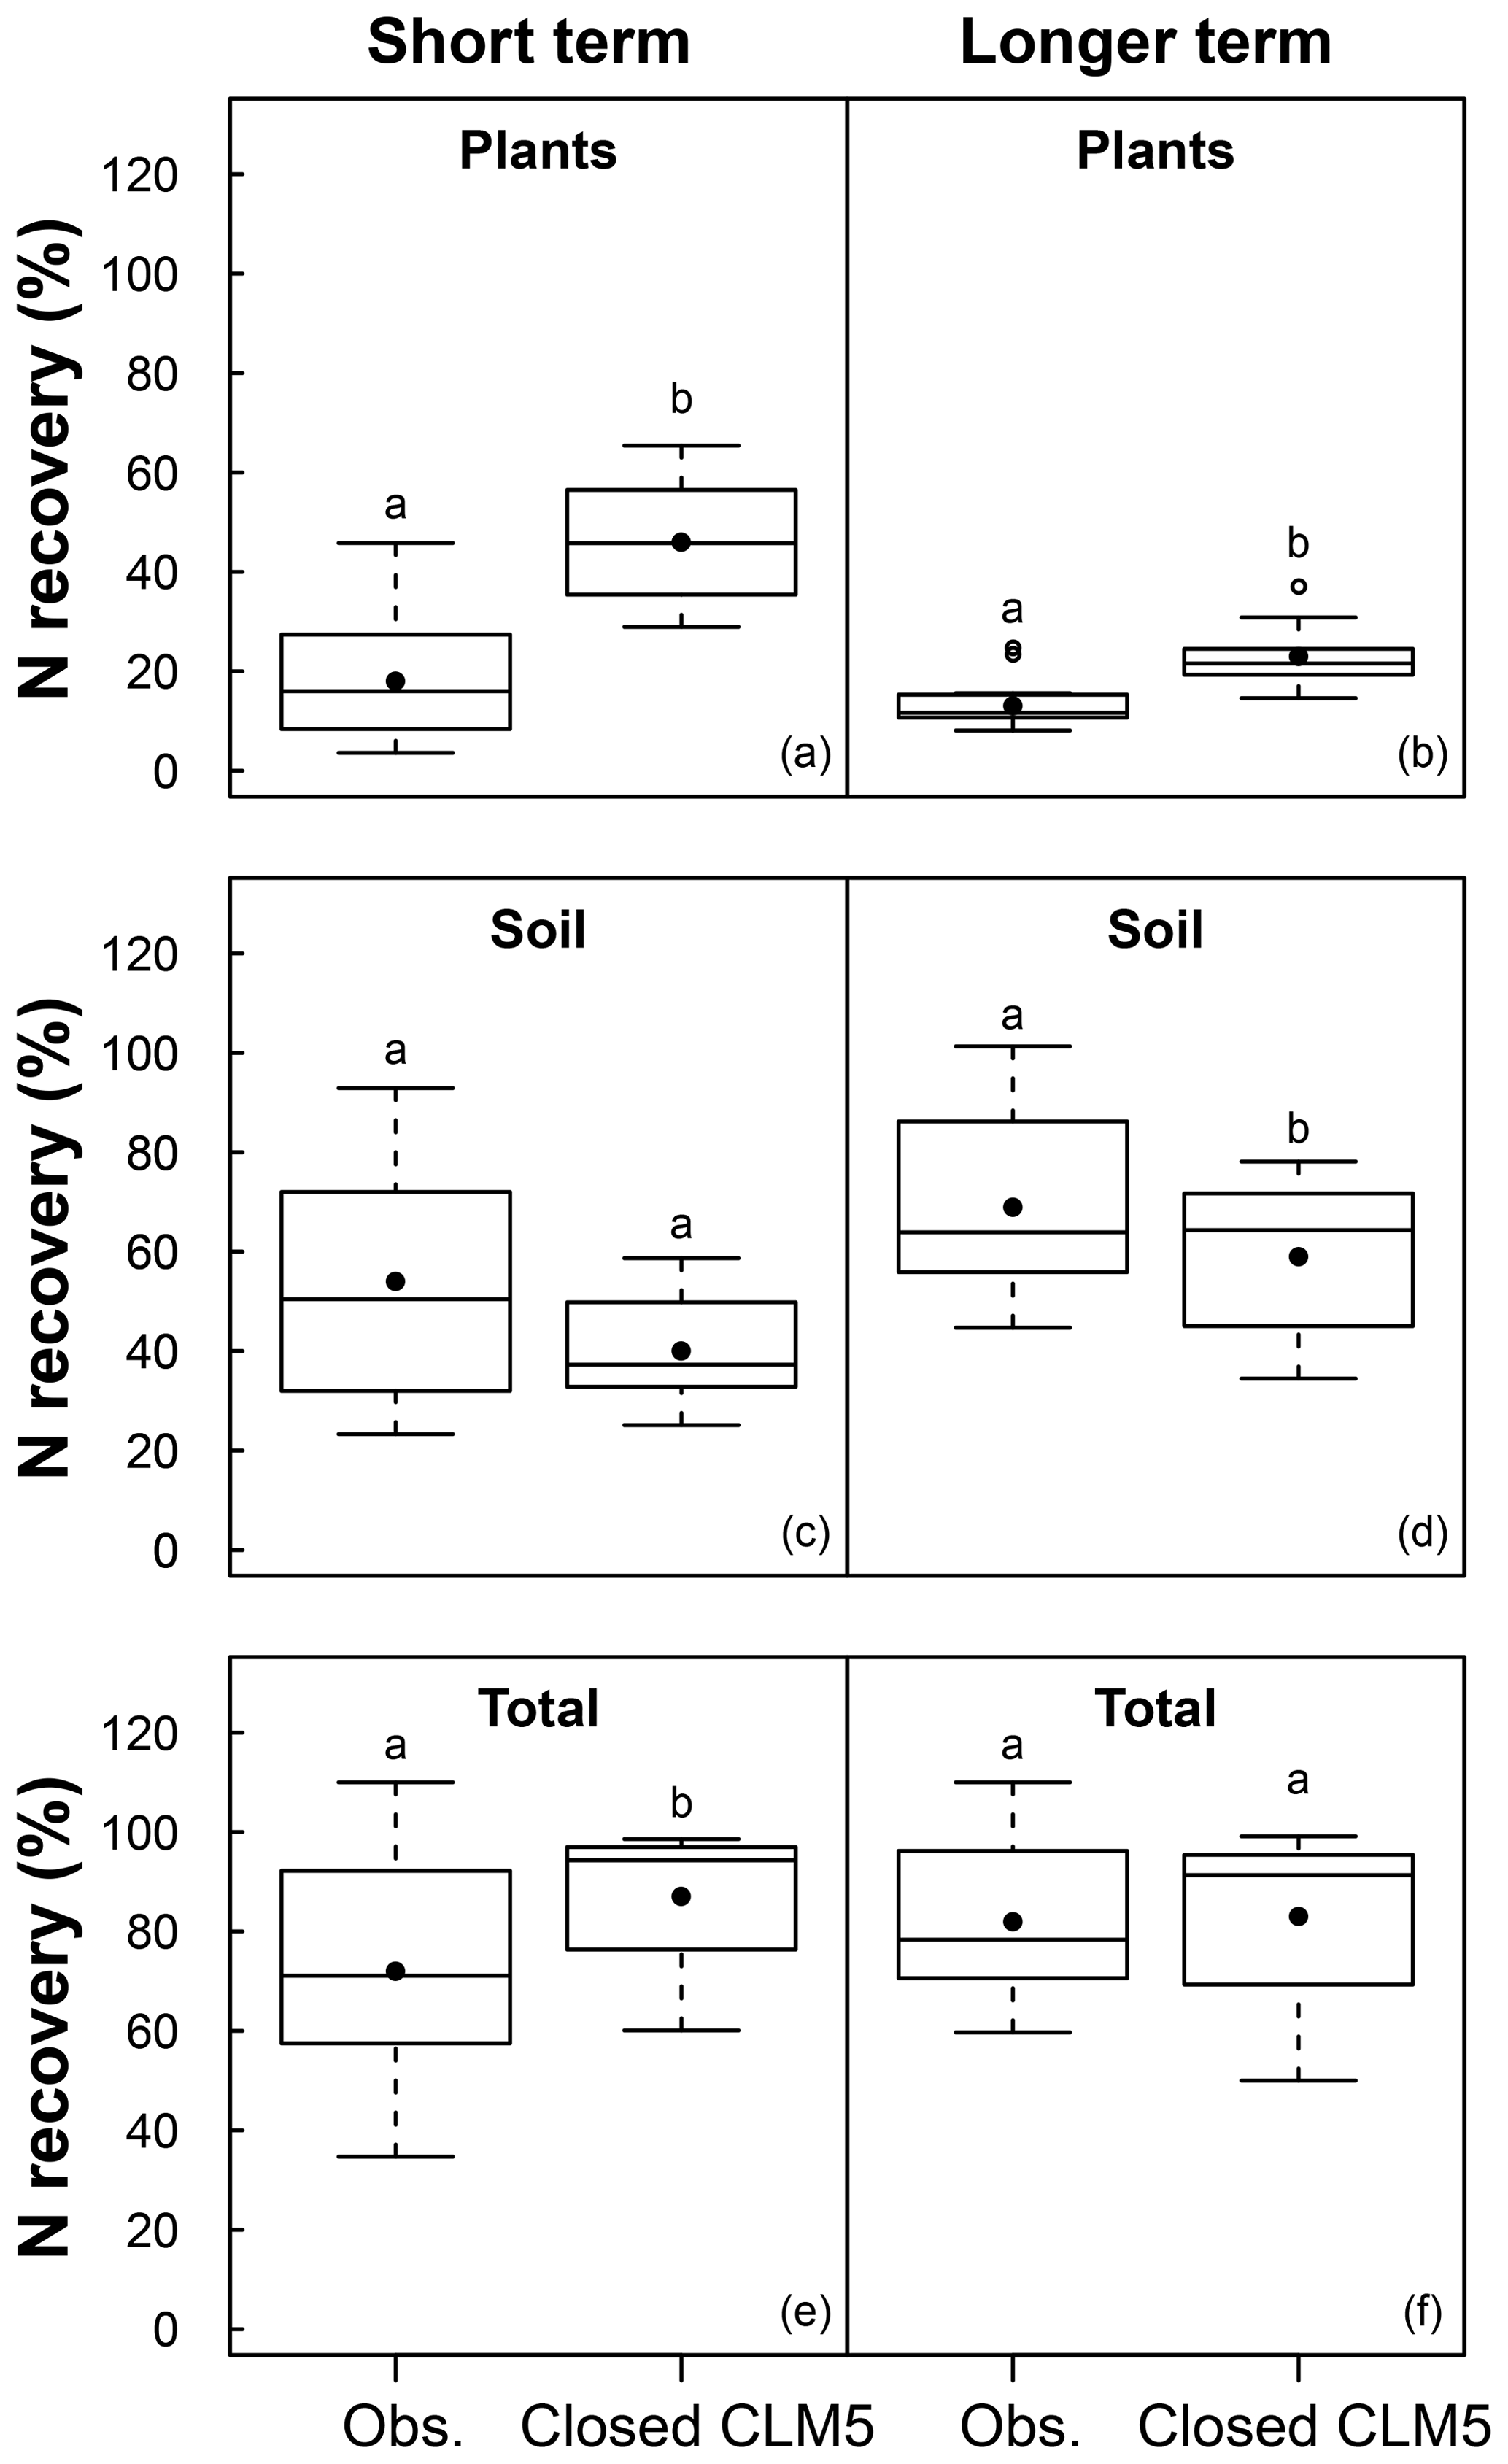 BG - Decadal fates and impacts of nitrogen additions on